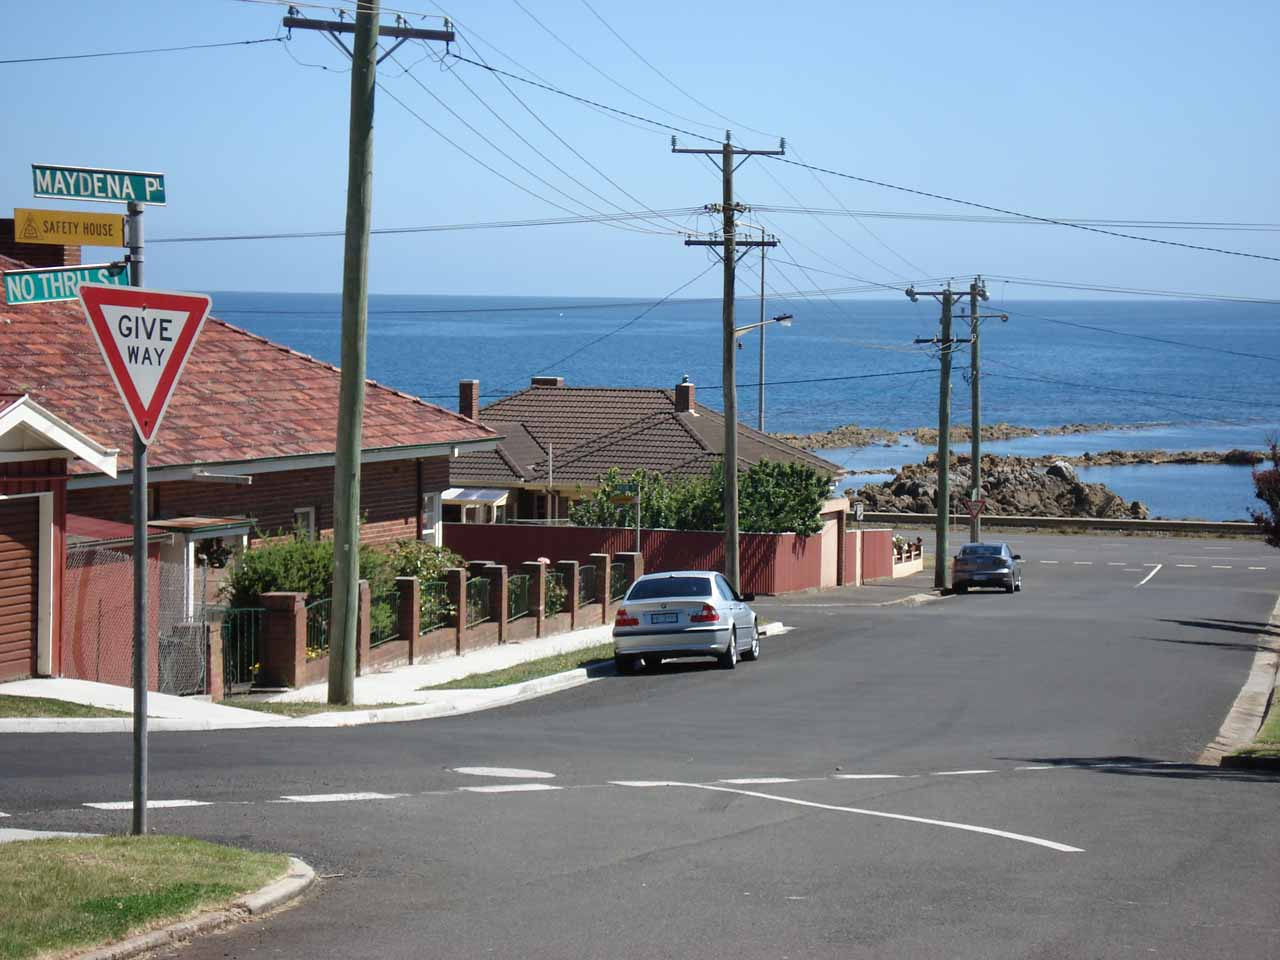 Burnie Park was close to the Bass Hwy in the western end of Burnie, which was close enough to see the ocean